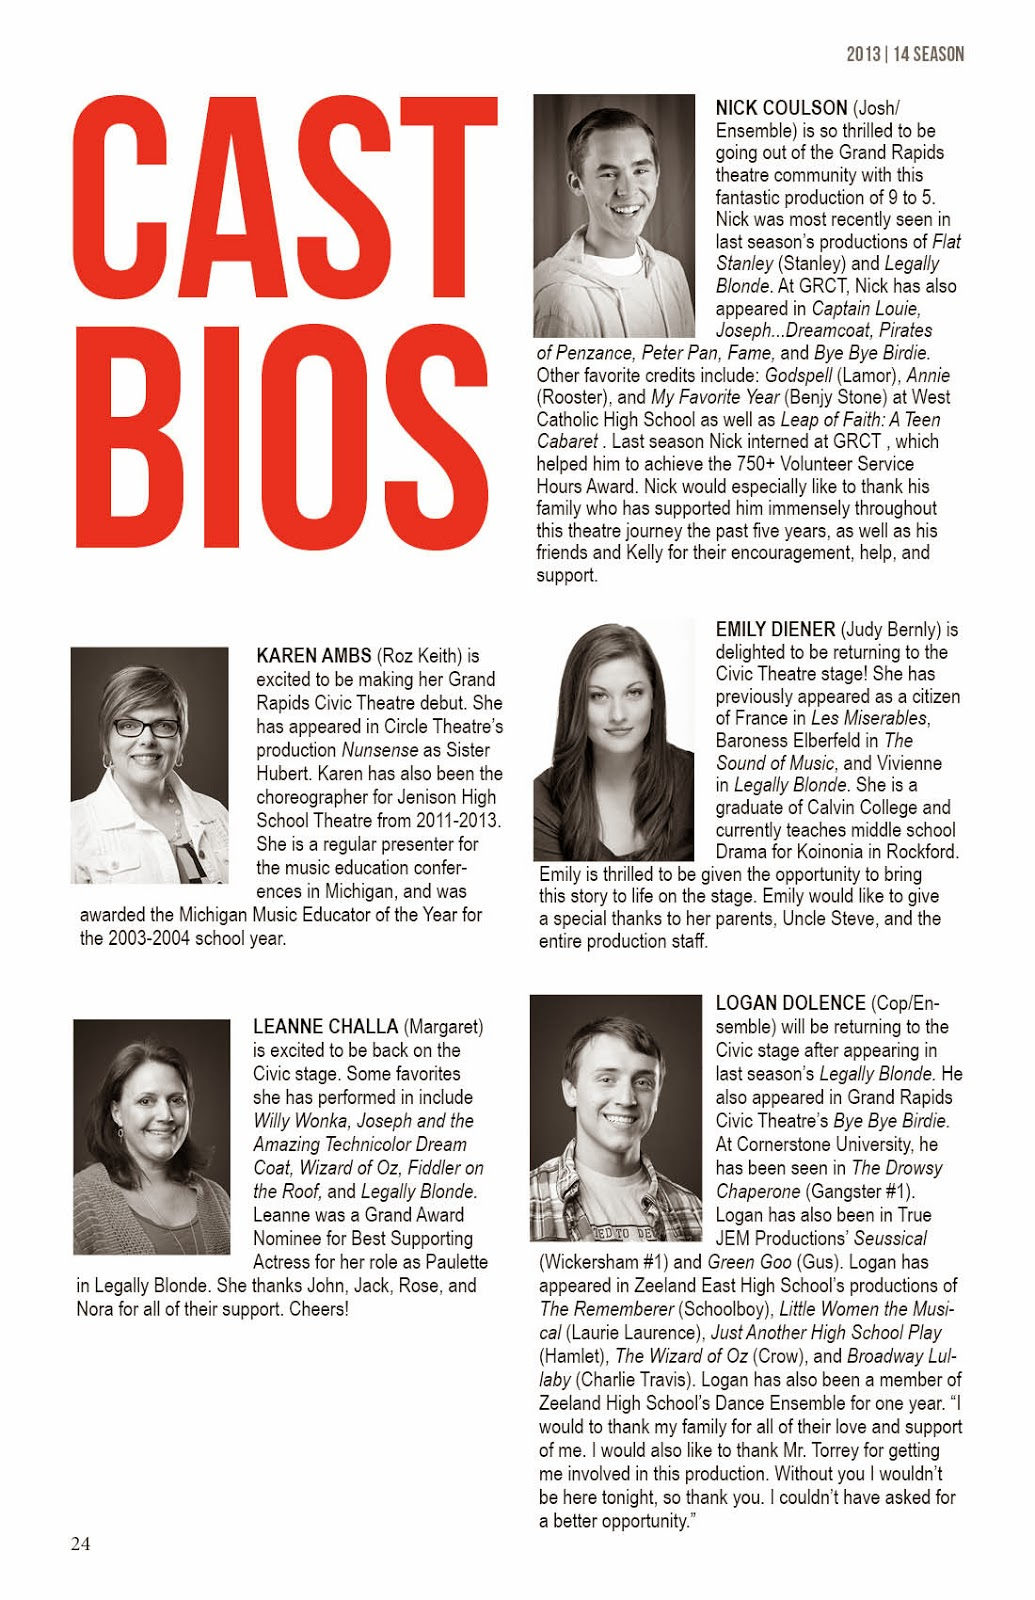 9 TO 5 THE MUSICAL: Cast Bios